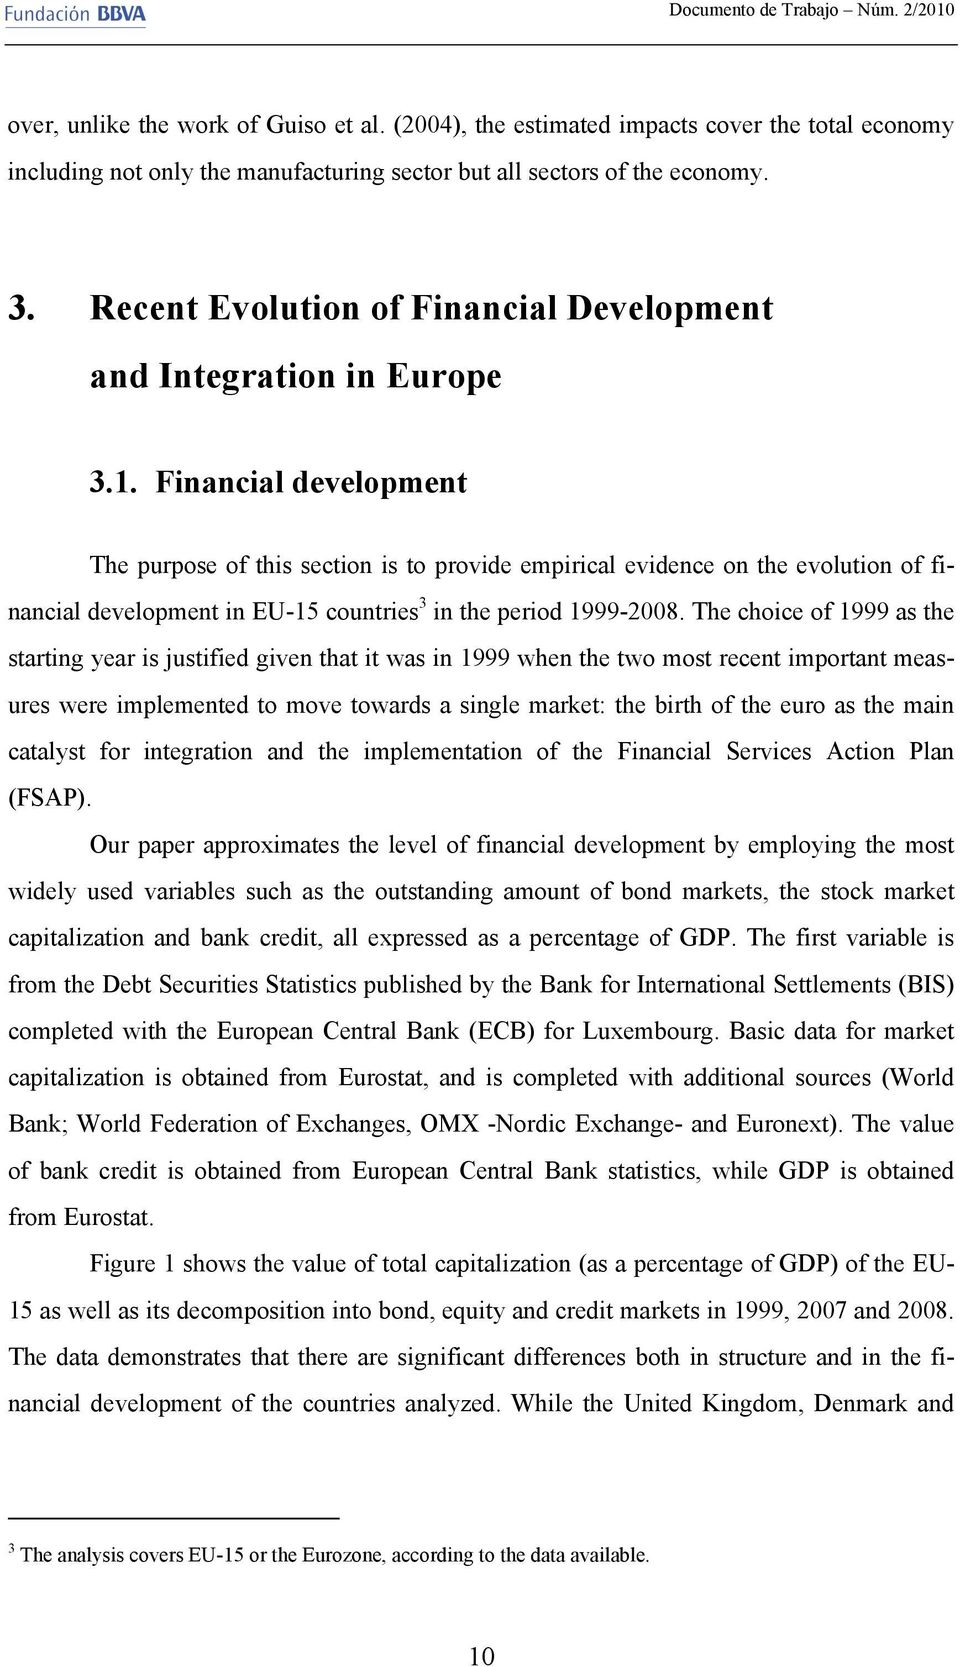 Financial development The purpose of this section is to provide empirical evidence on the evolution of financial development in EU-15 countries 3 in the period 1999-2008.